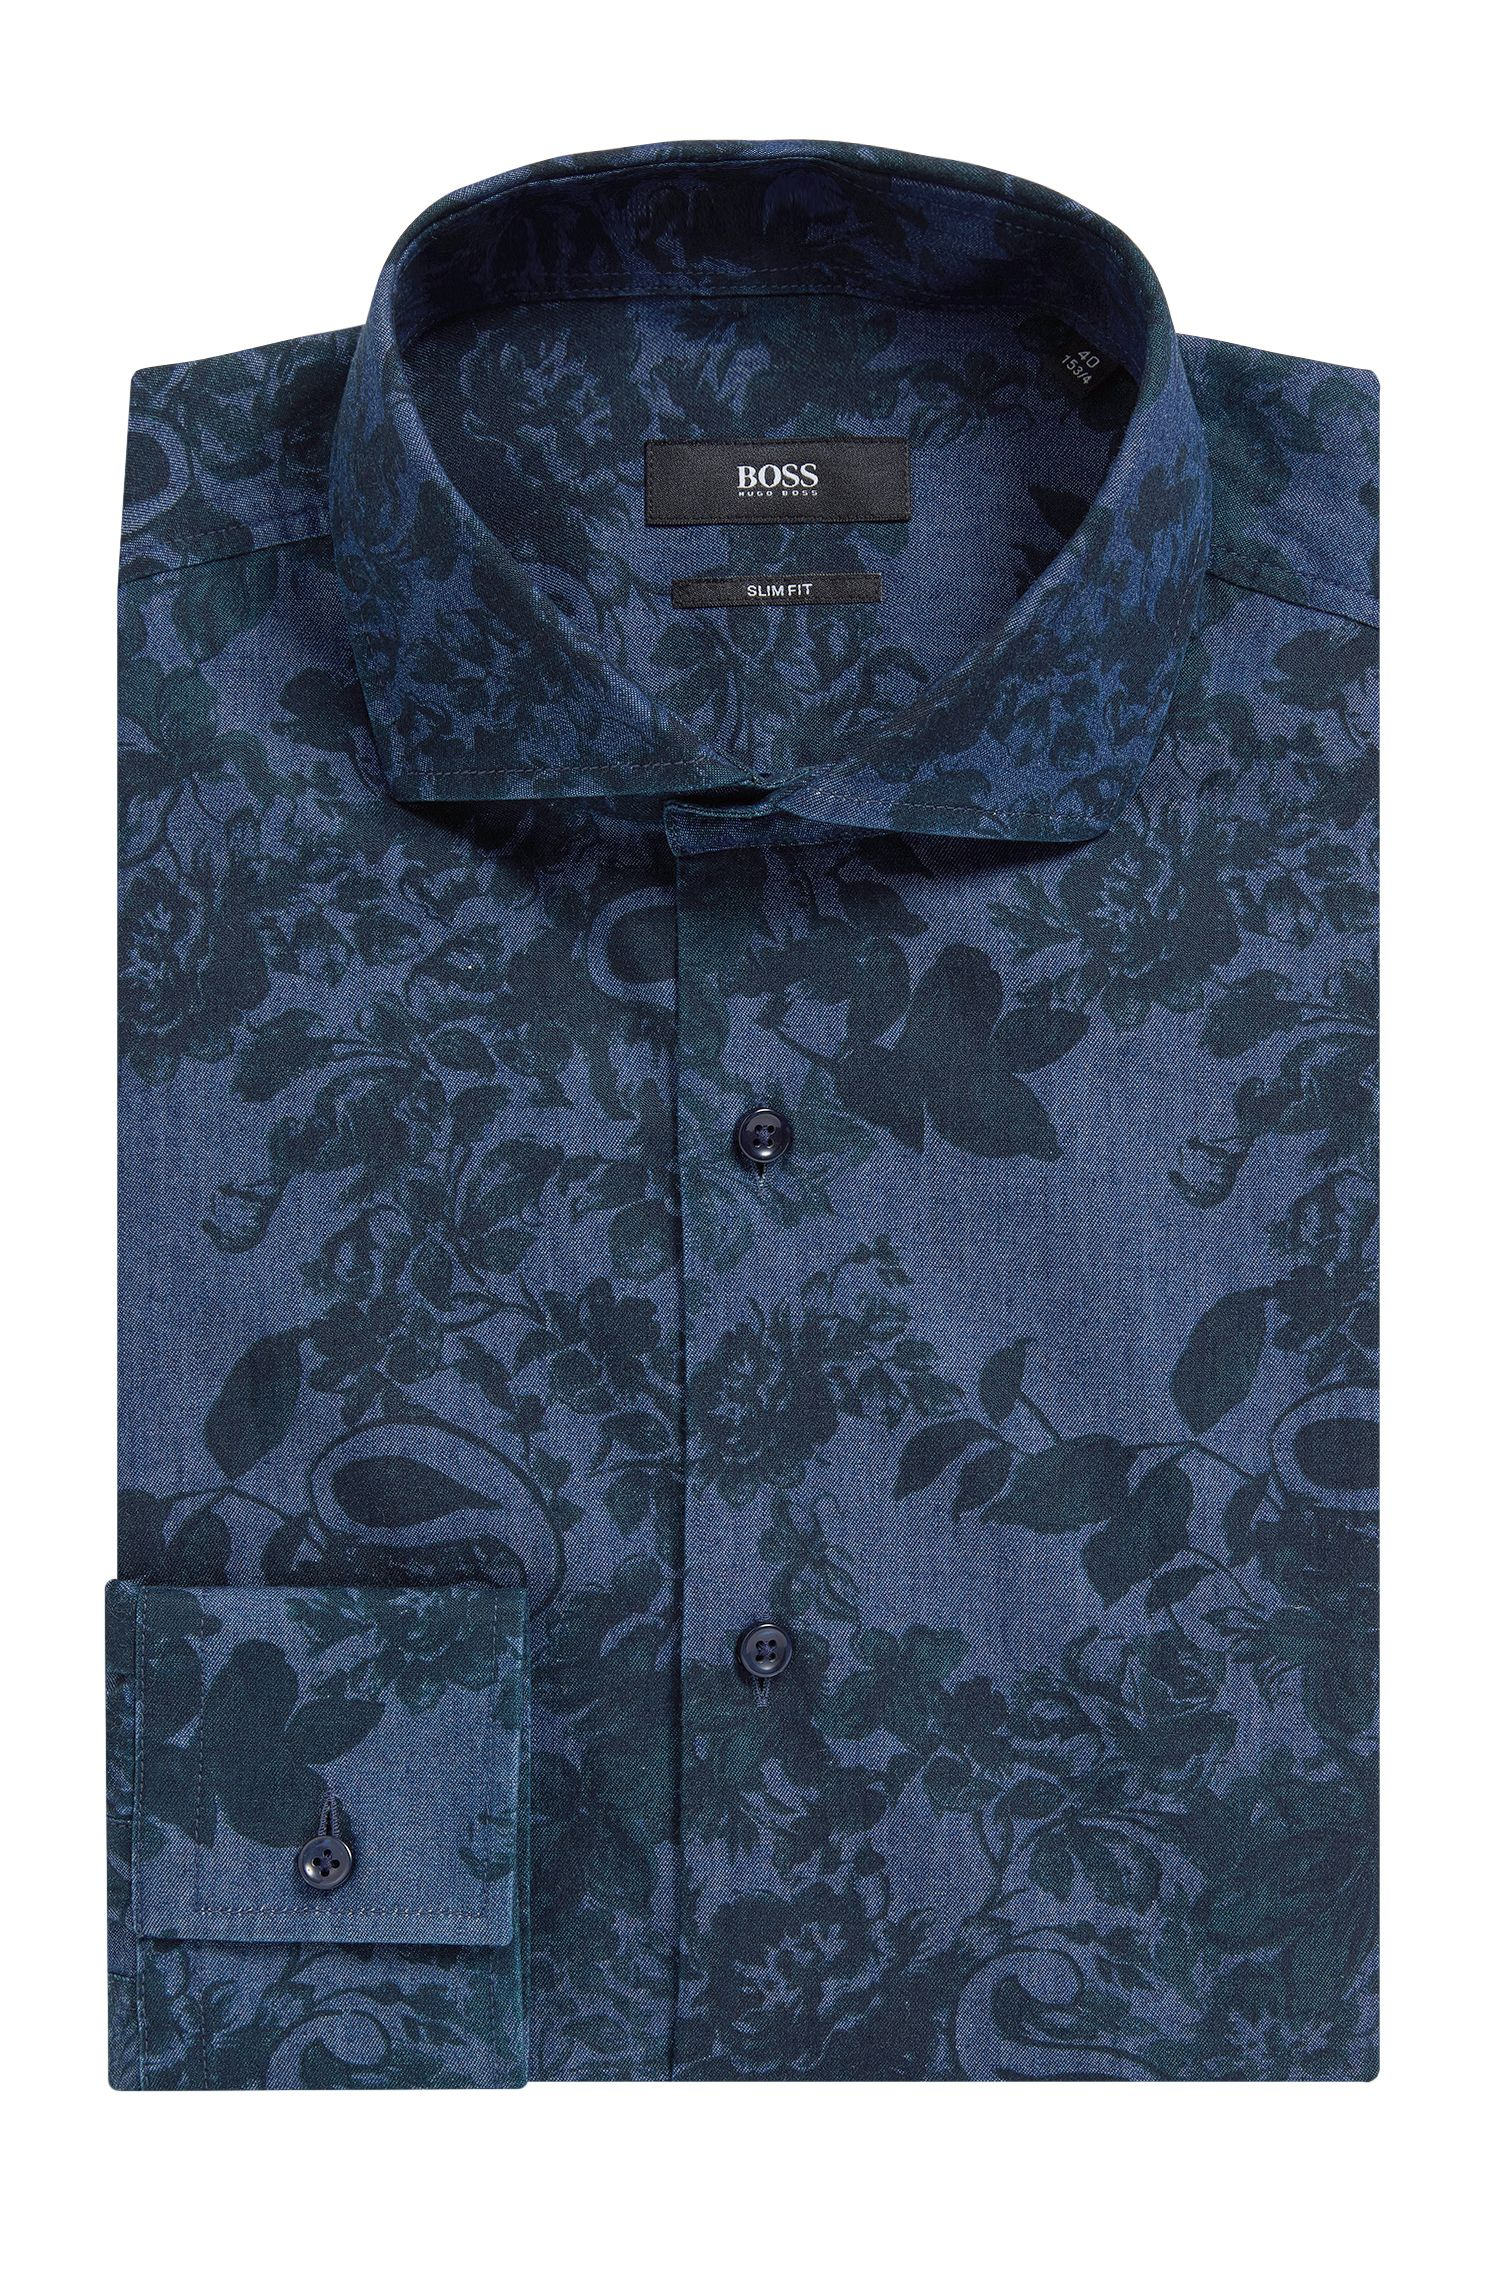 Floral Cotton Dress Shirt, Slim Fit | Jason